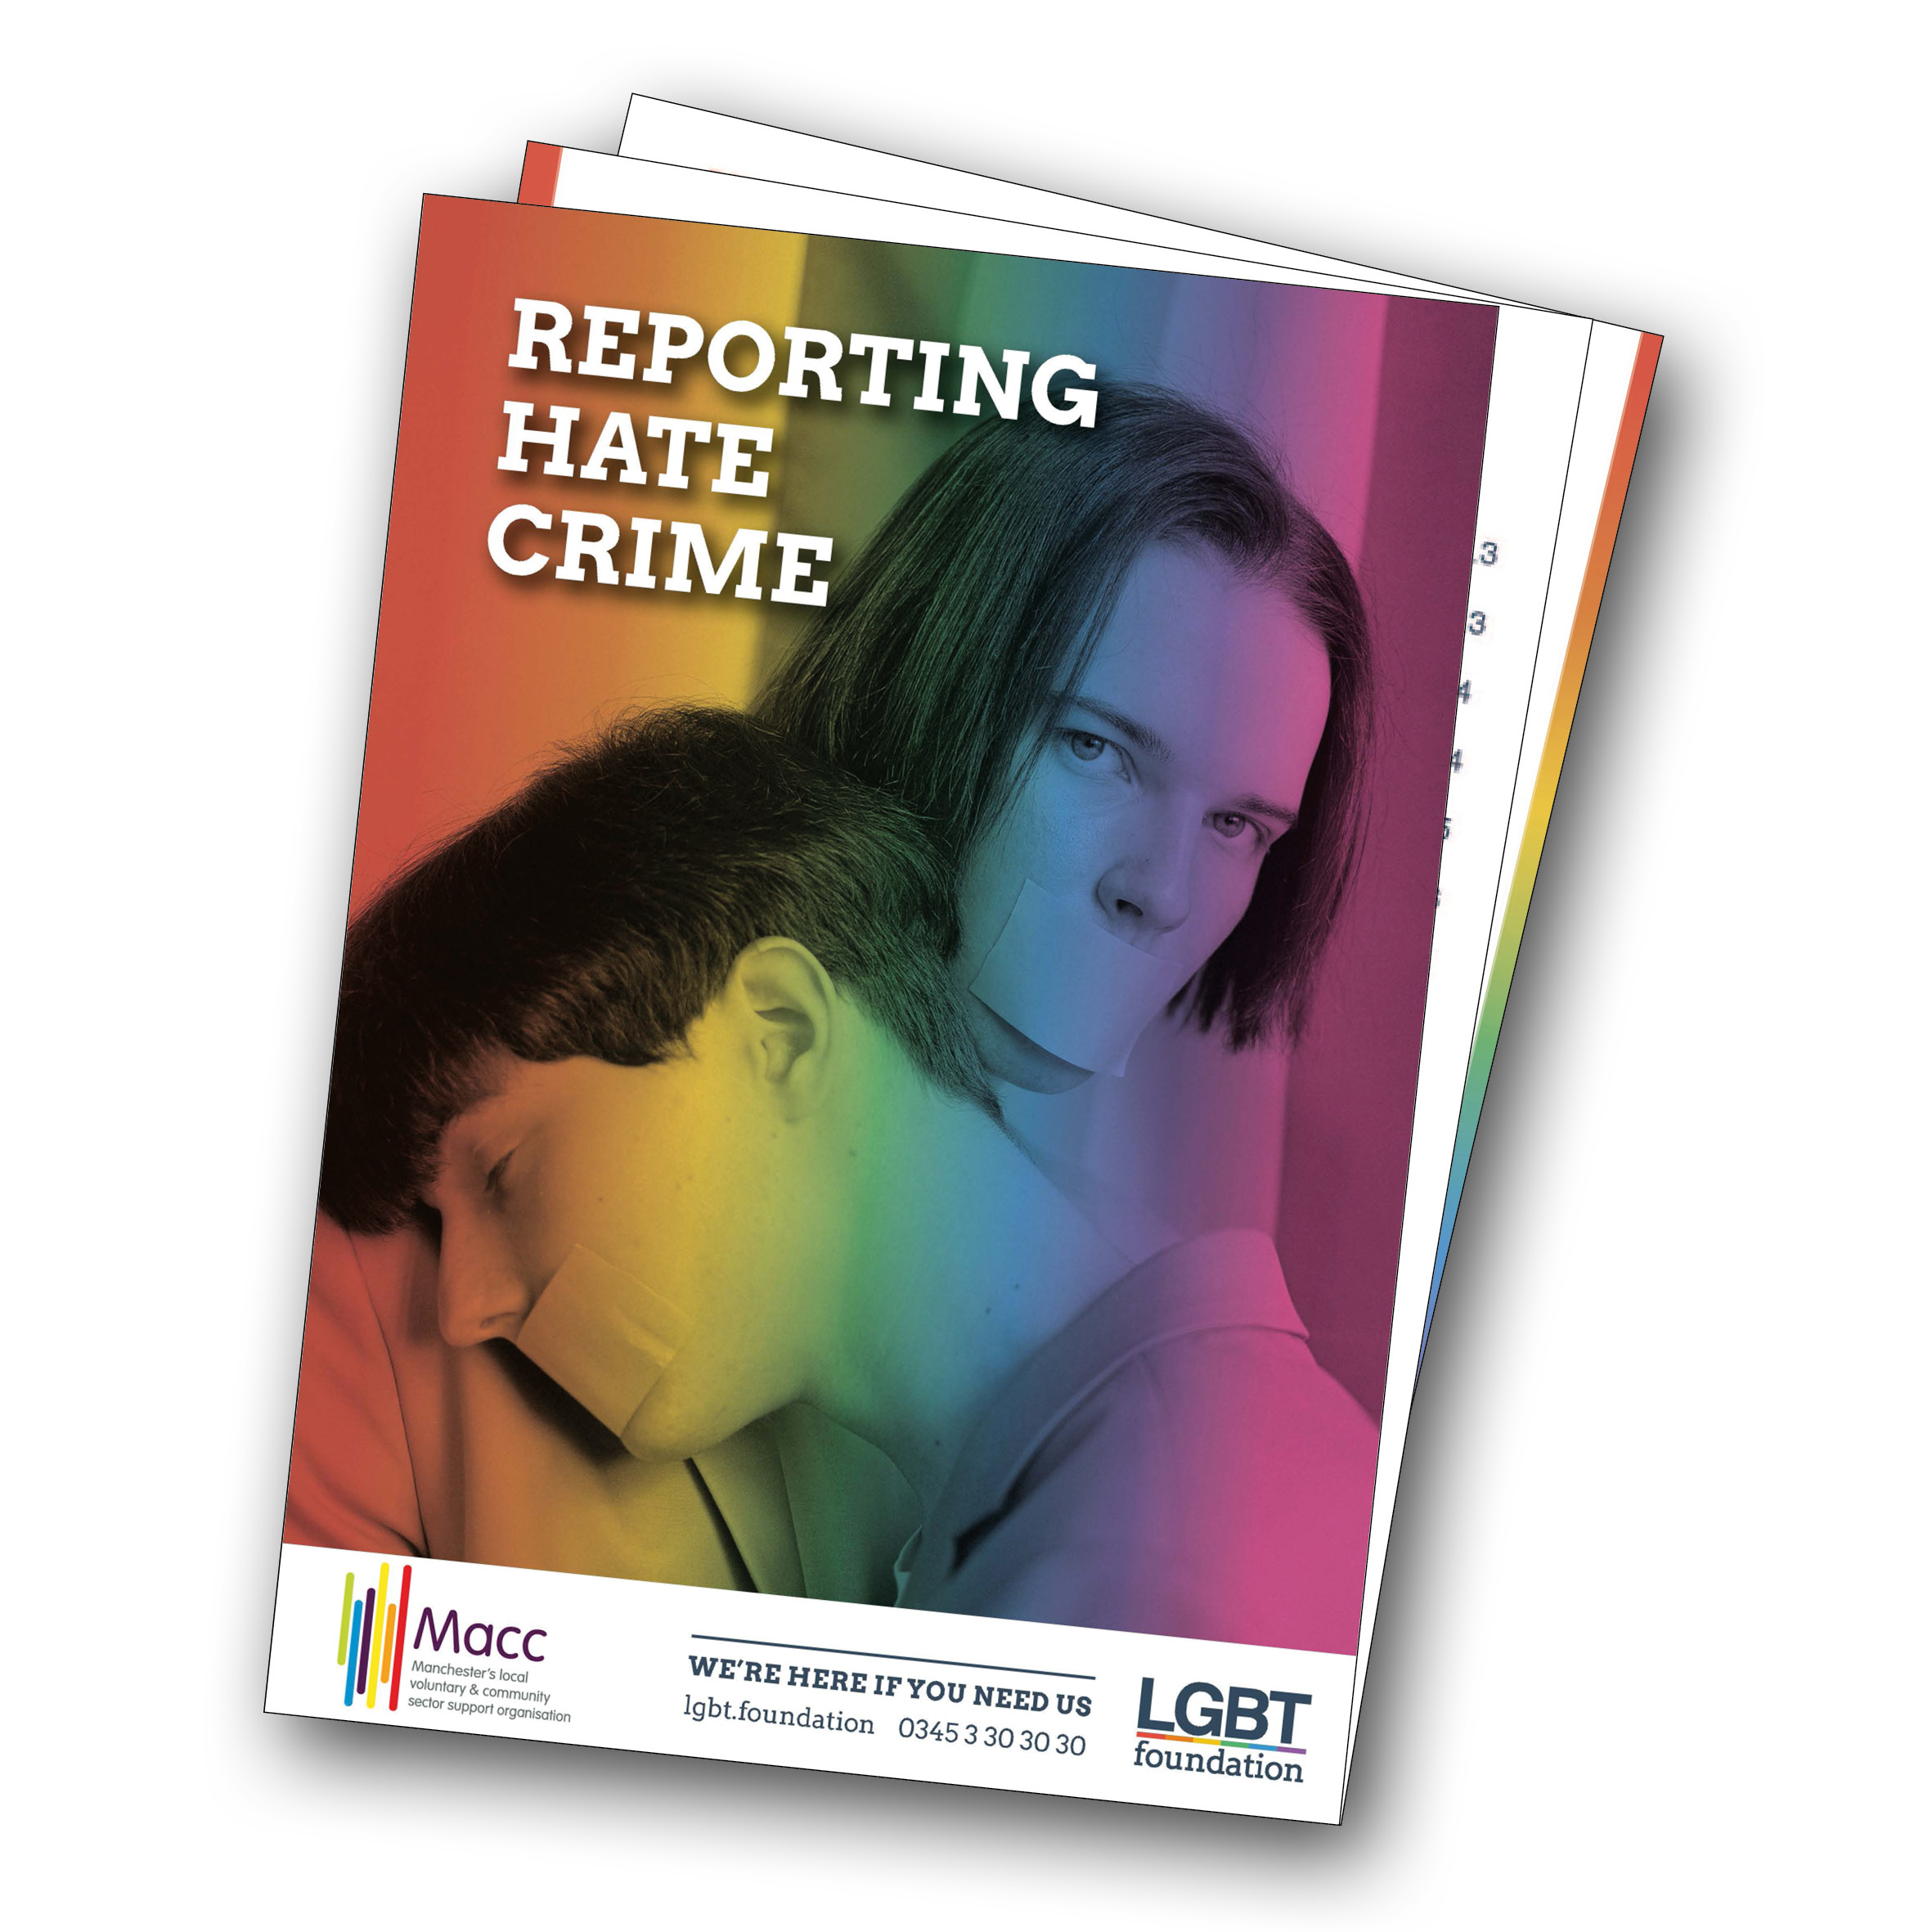 Image of the cover of a guide on reporting LGBT hate crime